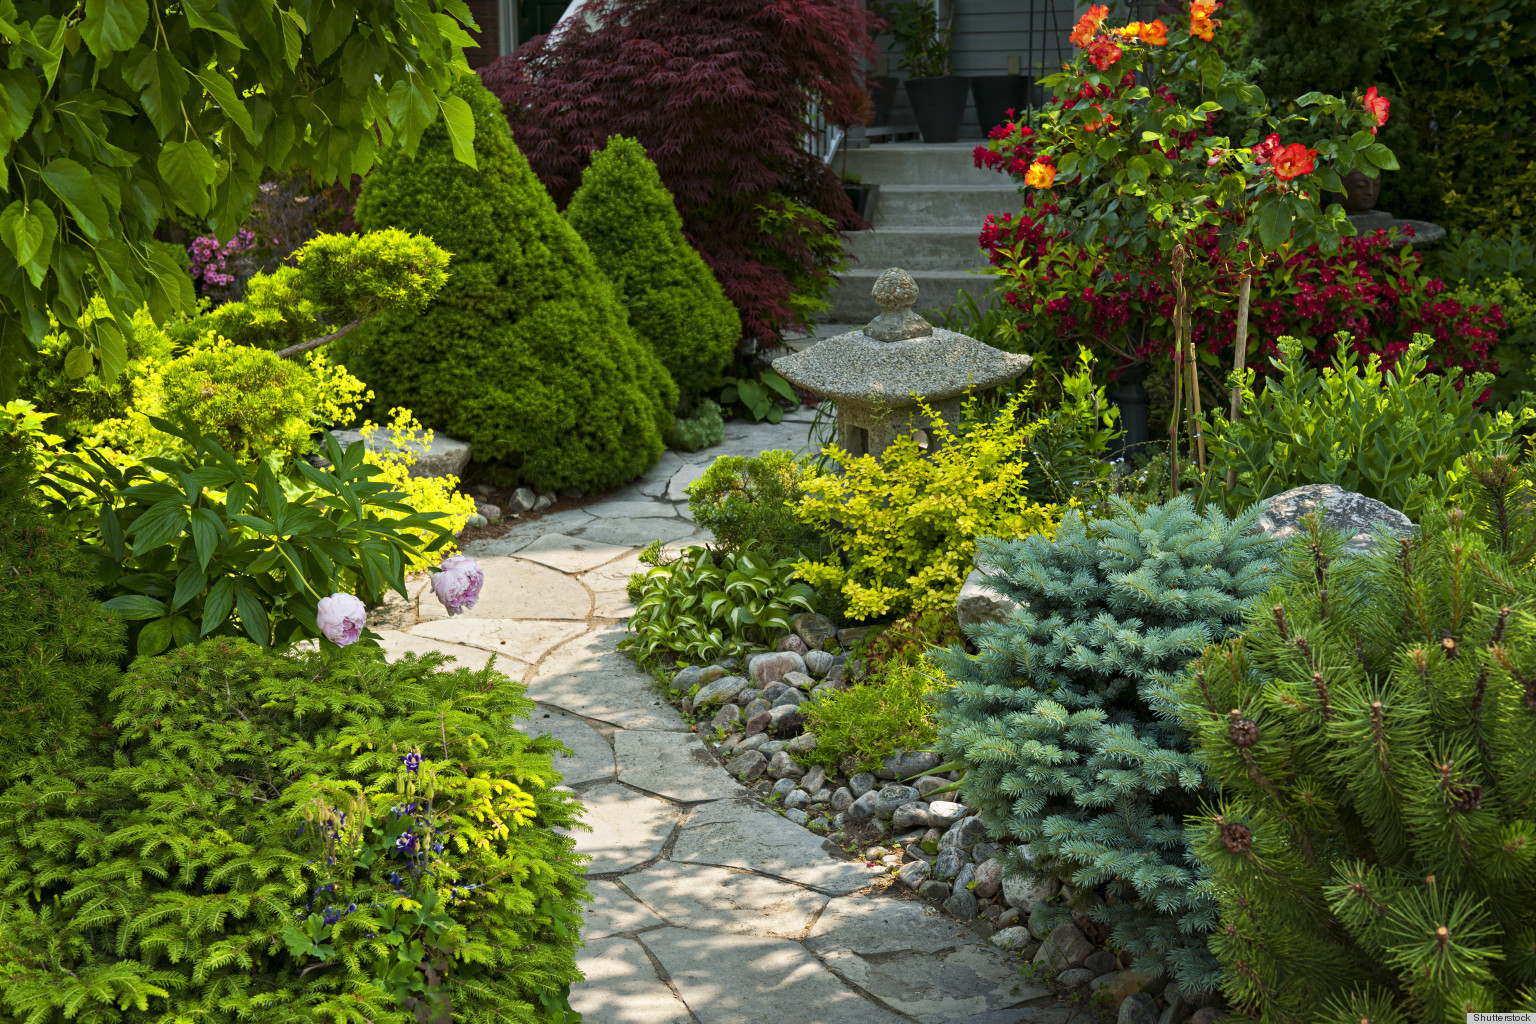 9 weekend diy ideas that will inspire your inner landscaper photos huffpost - Garden ideas diy ...